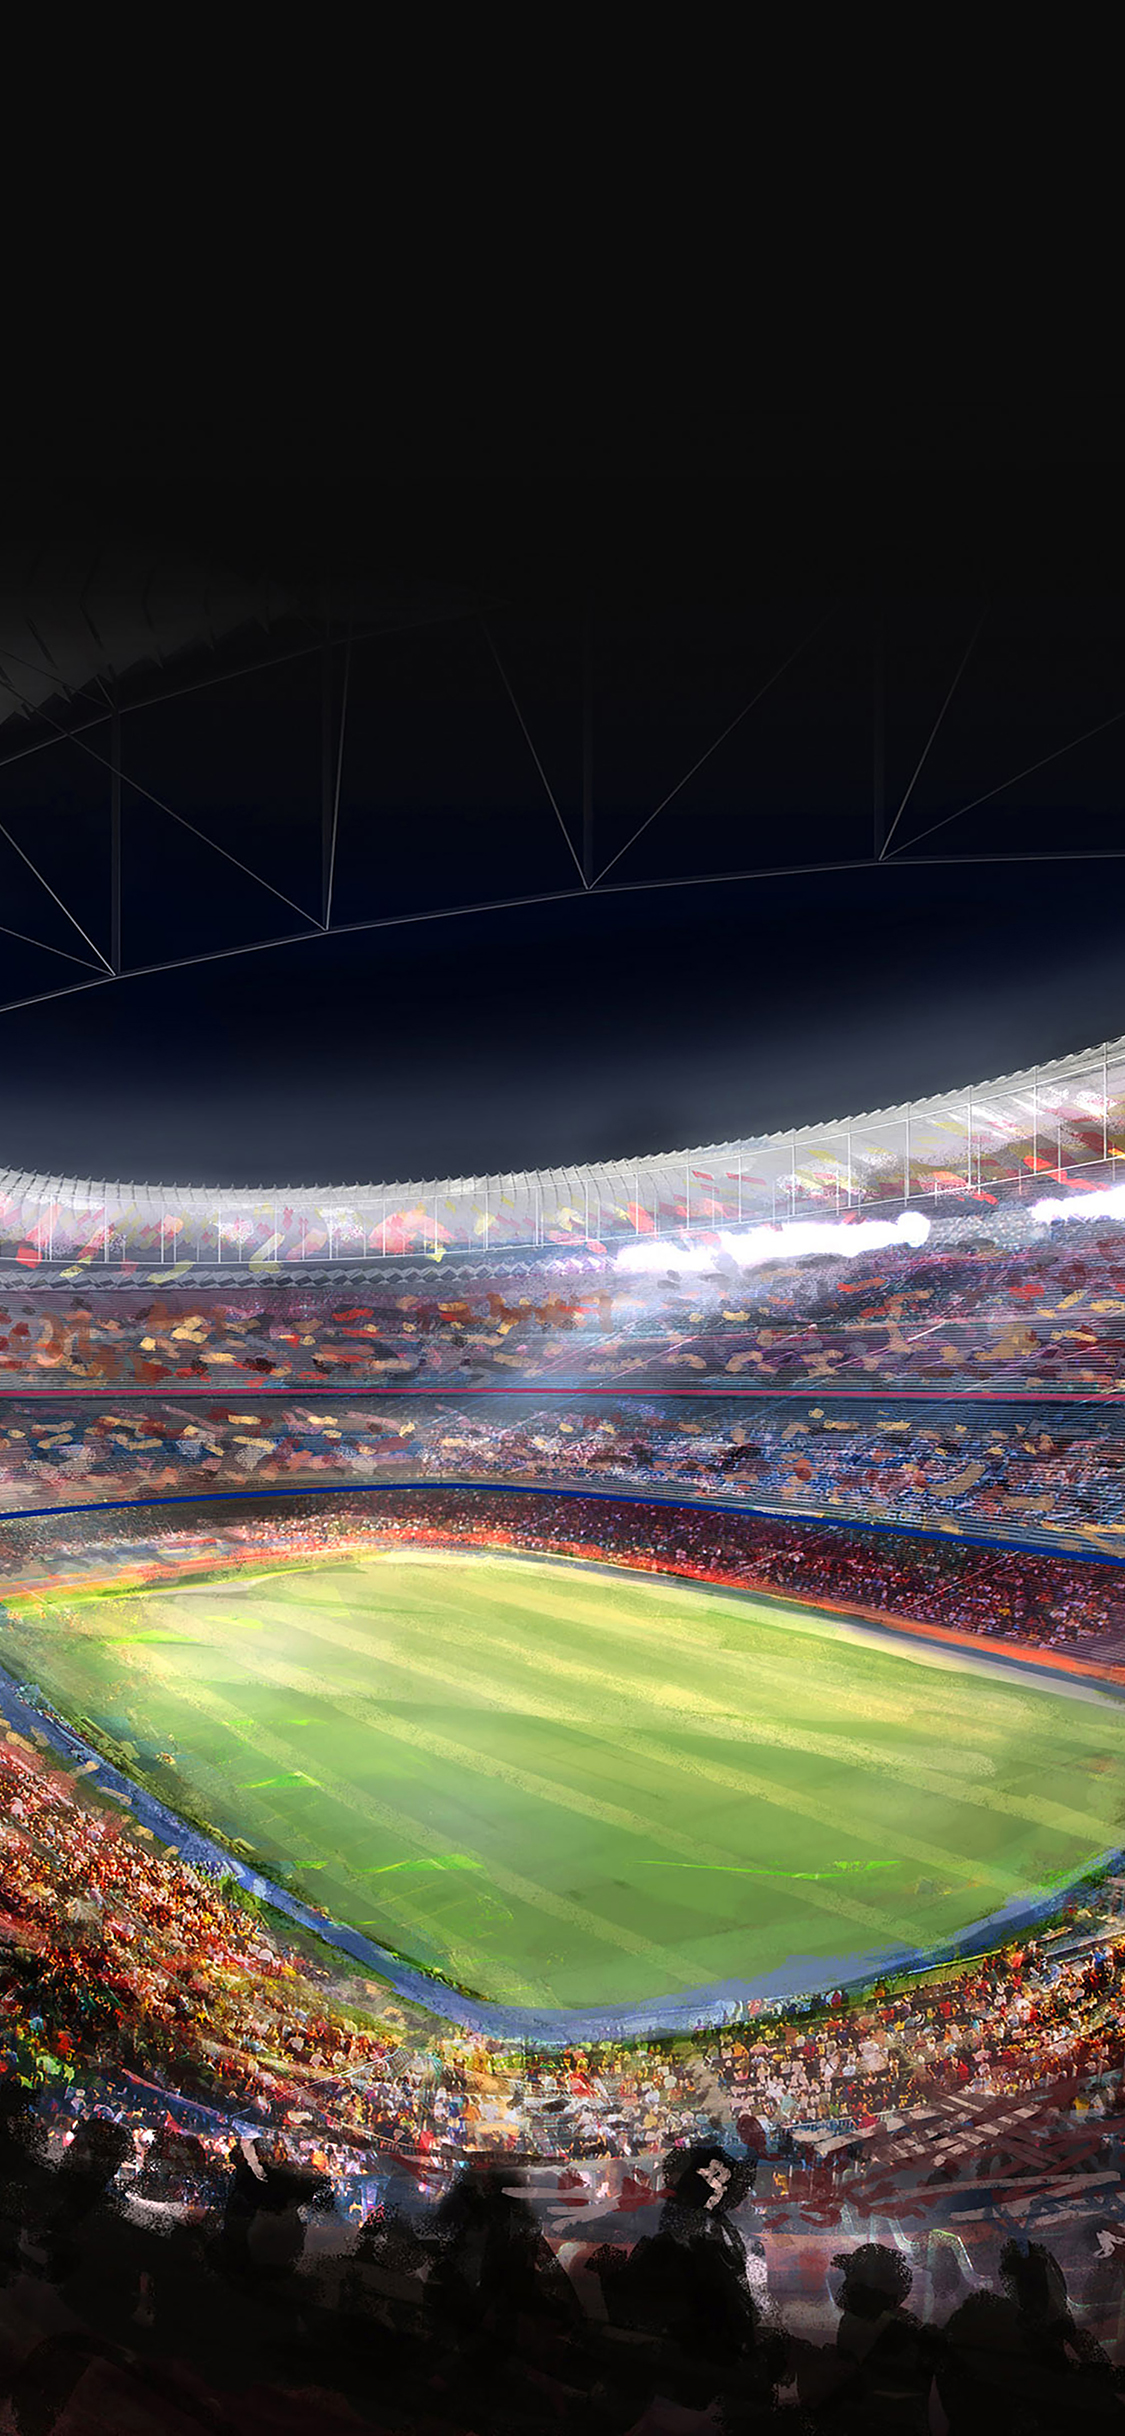 Anime Wallpaper Iphone X Aa82 Wallpaper Fc Barcelona Camp Nou Sports Papers Co